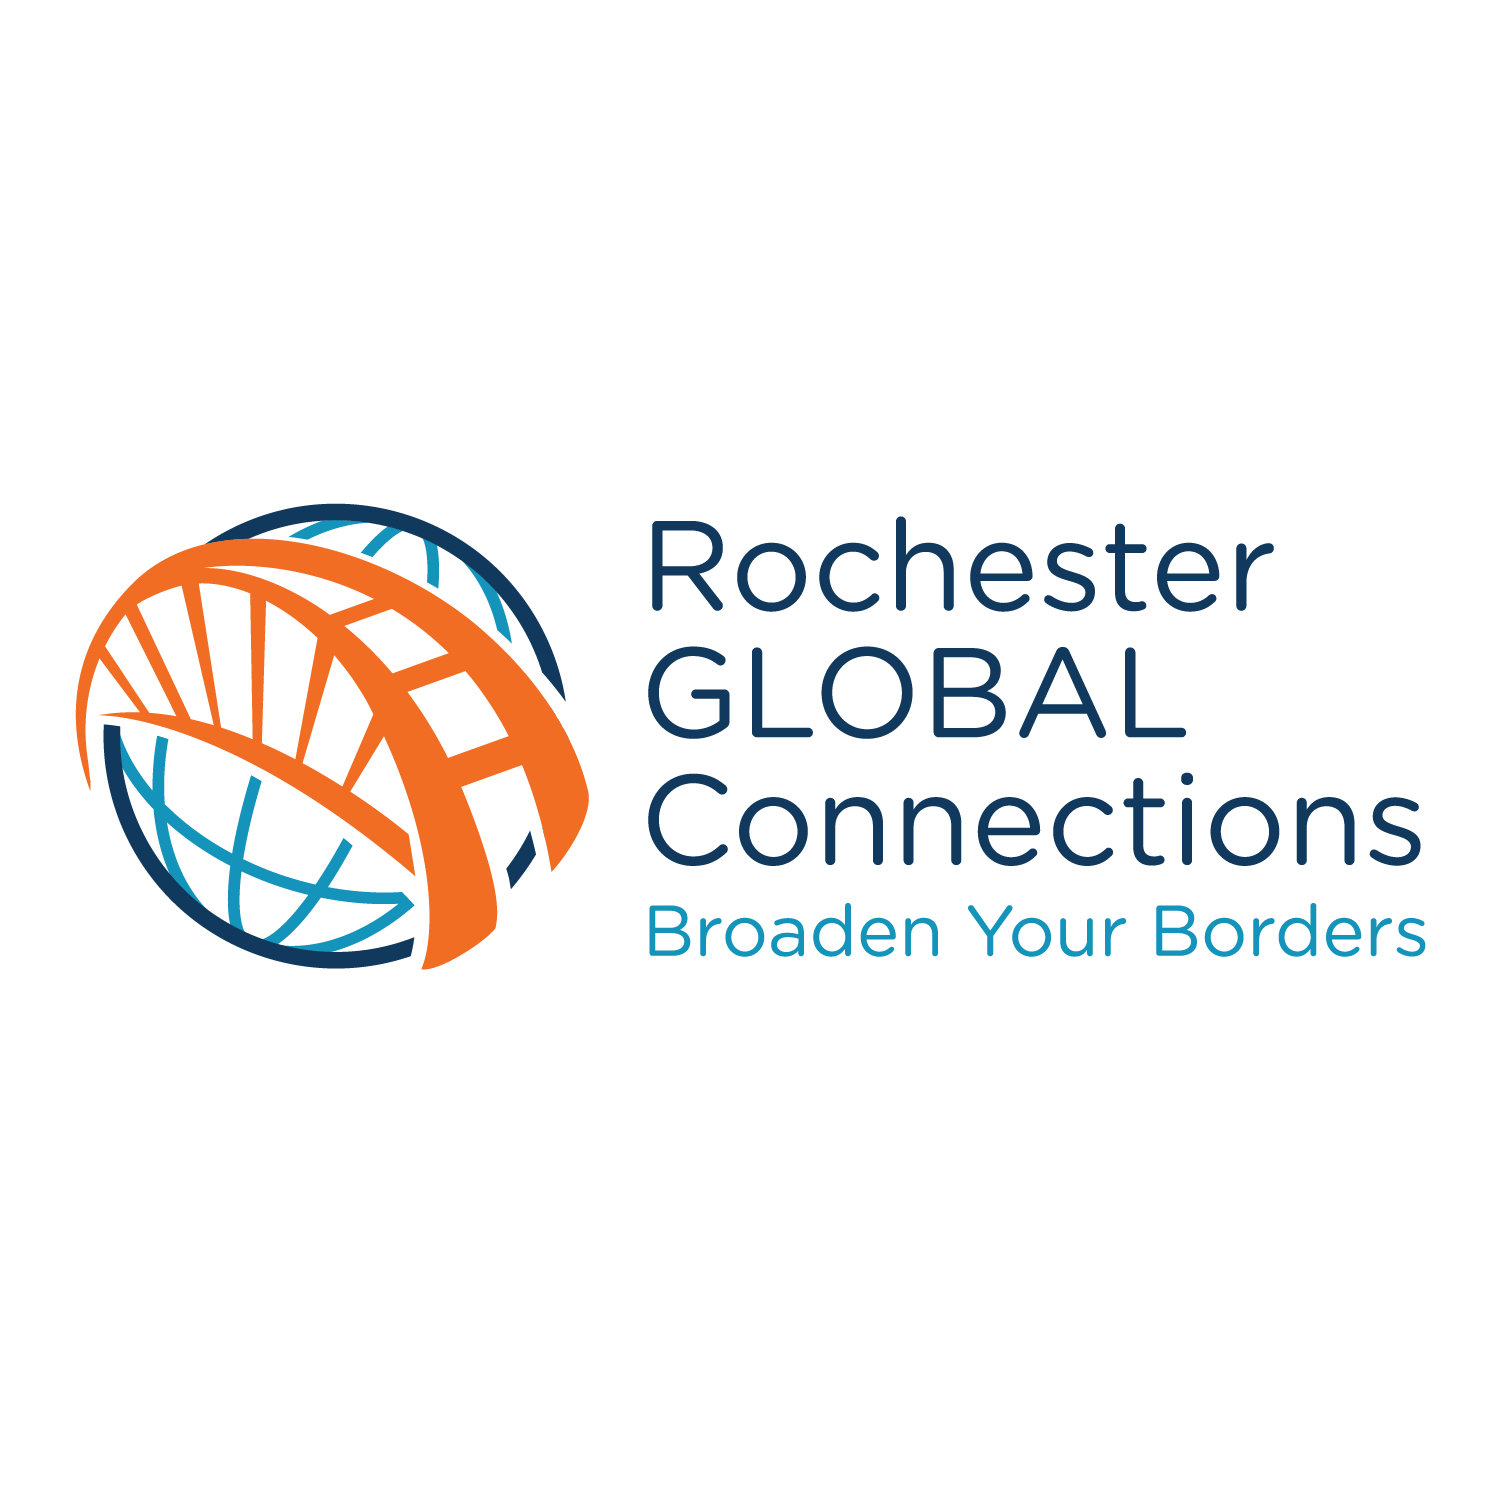 Rochester Global Connections